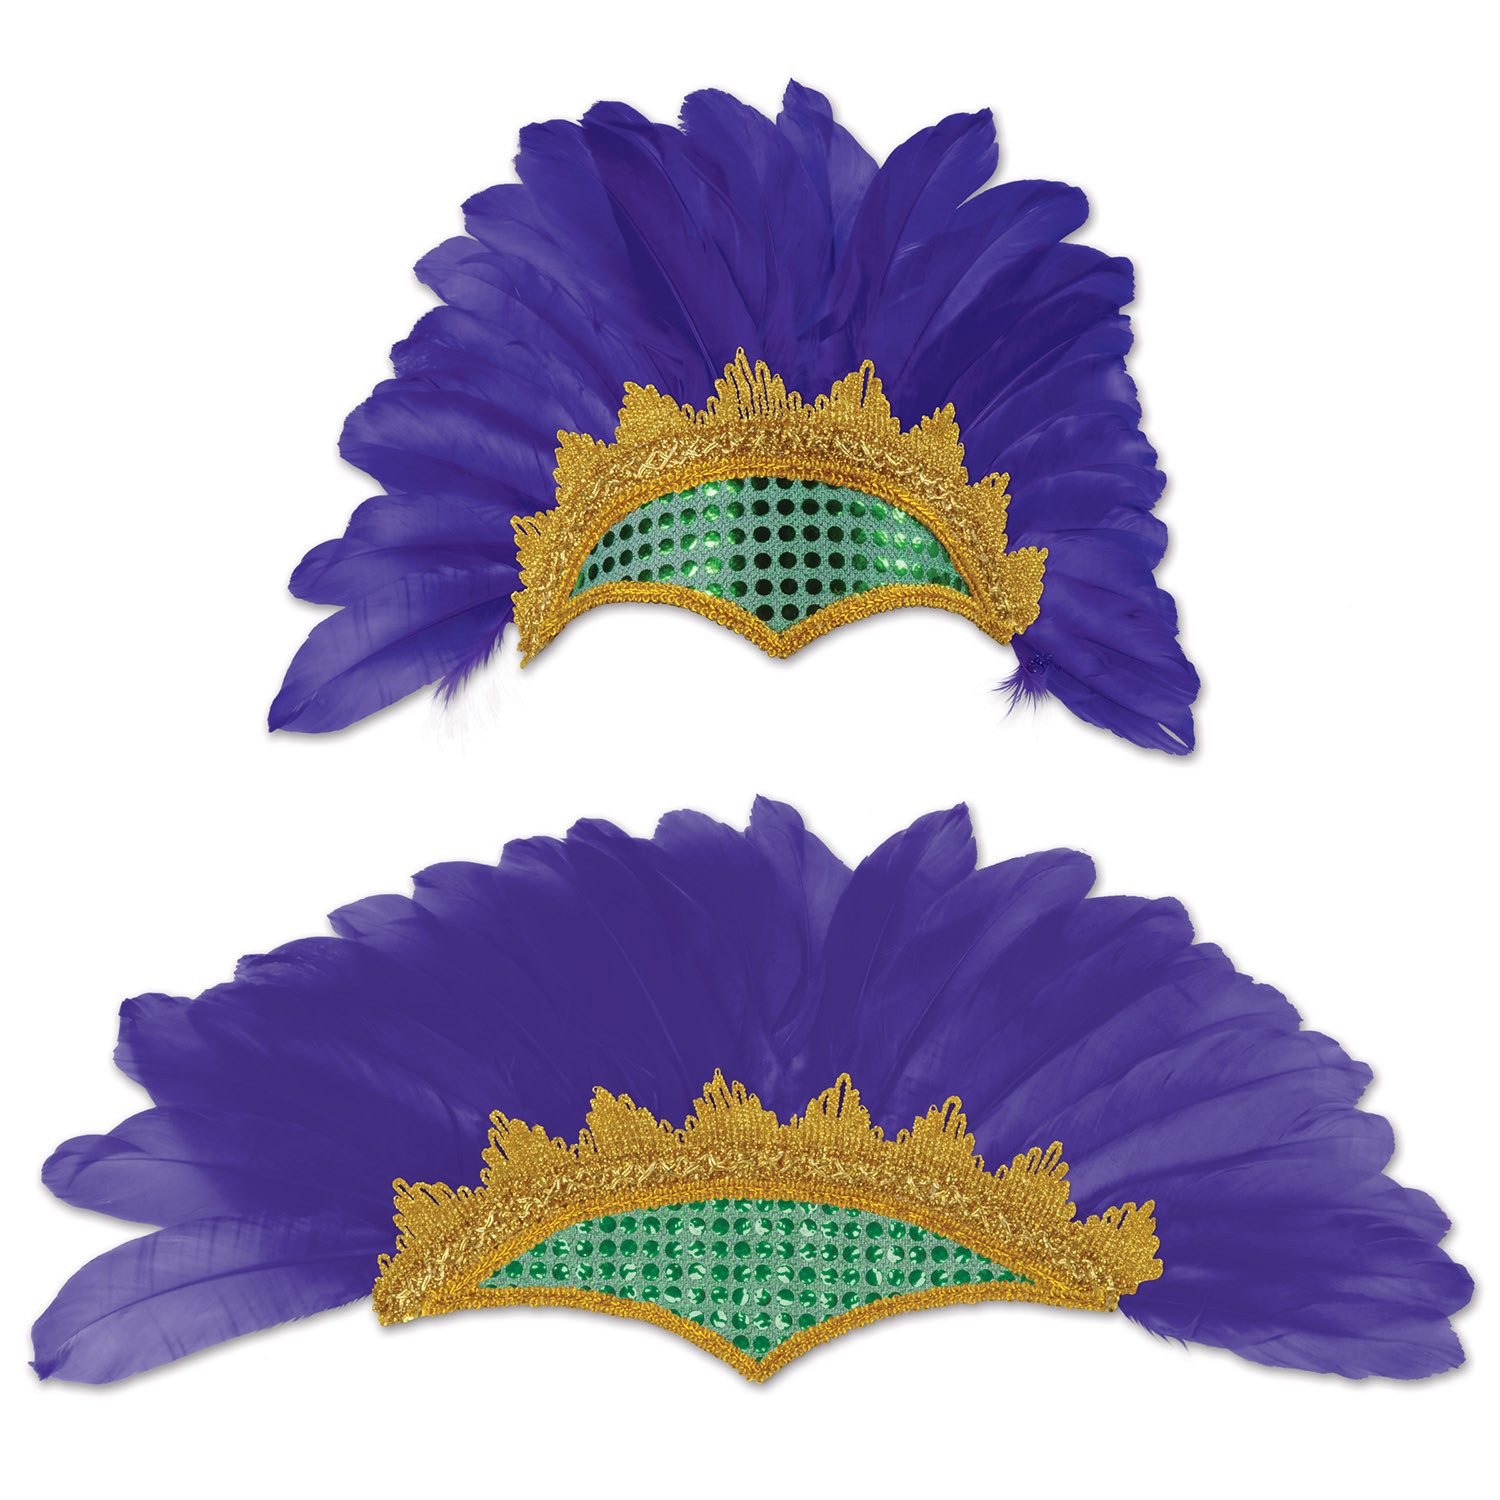 Feathered Showgirl Headpiece (Pack of 12) Feathered Showgirl Headpiece, mardi gras, accessory, wait staff, party favor, wholesale, inexpensive, bulk